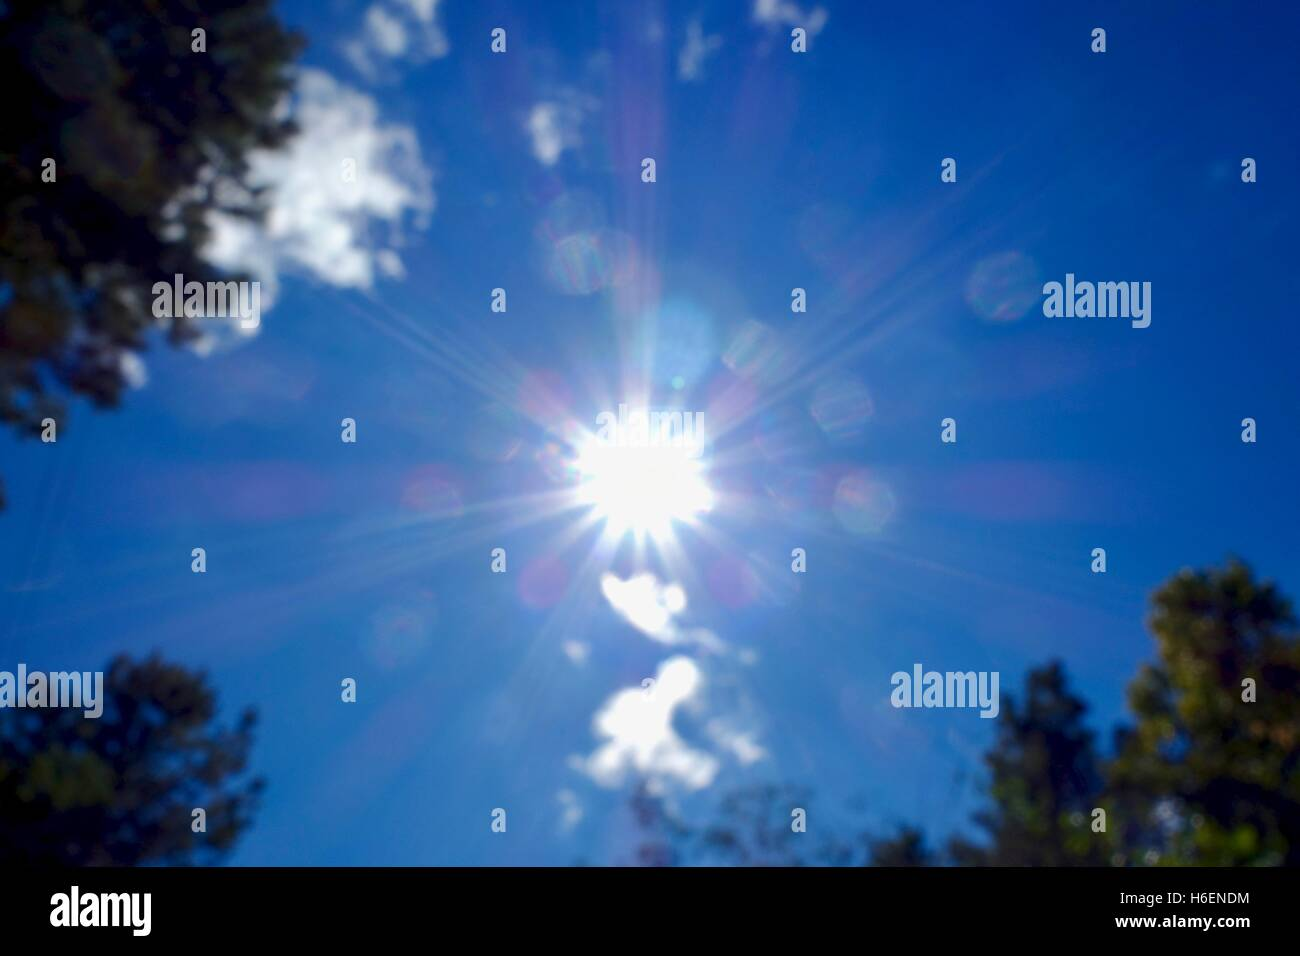 Looking up into the bright summer sky on a partly cloudy day. - Stock Image